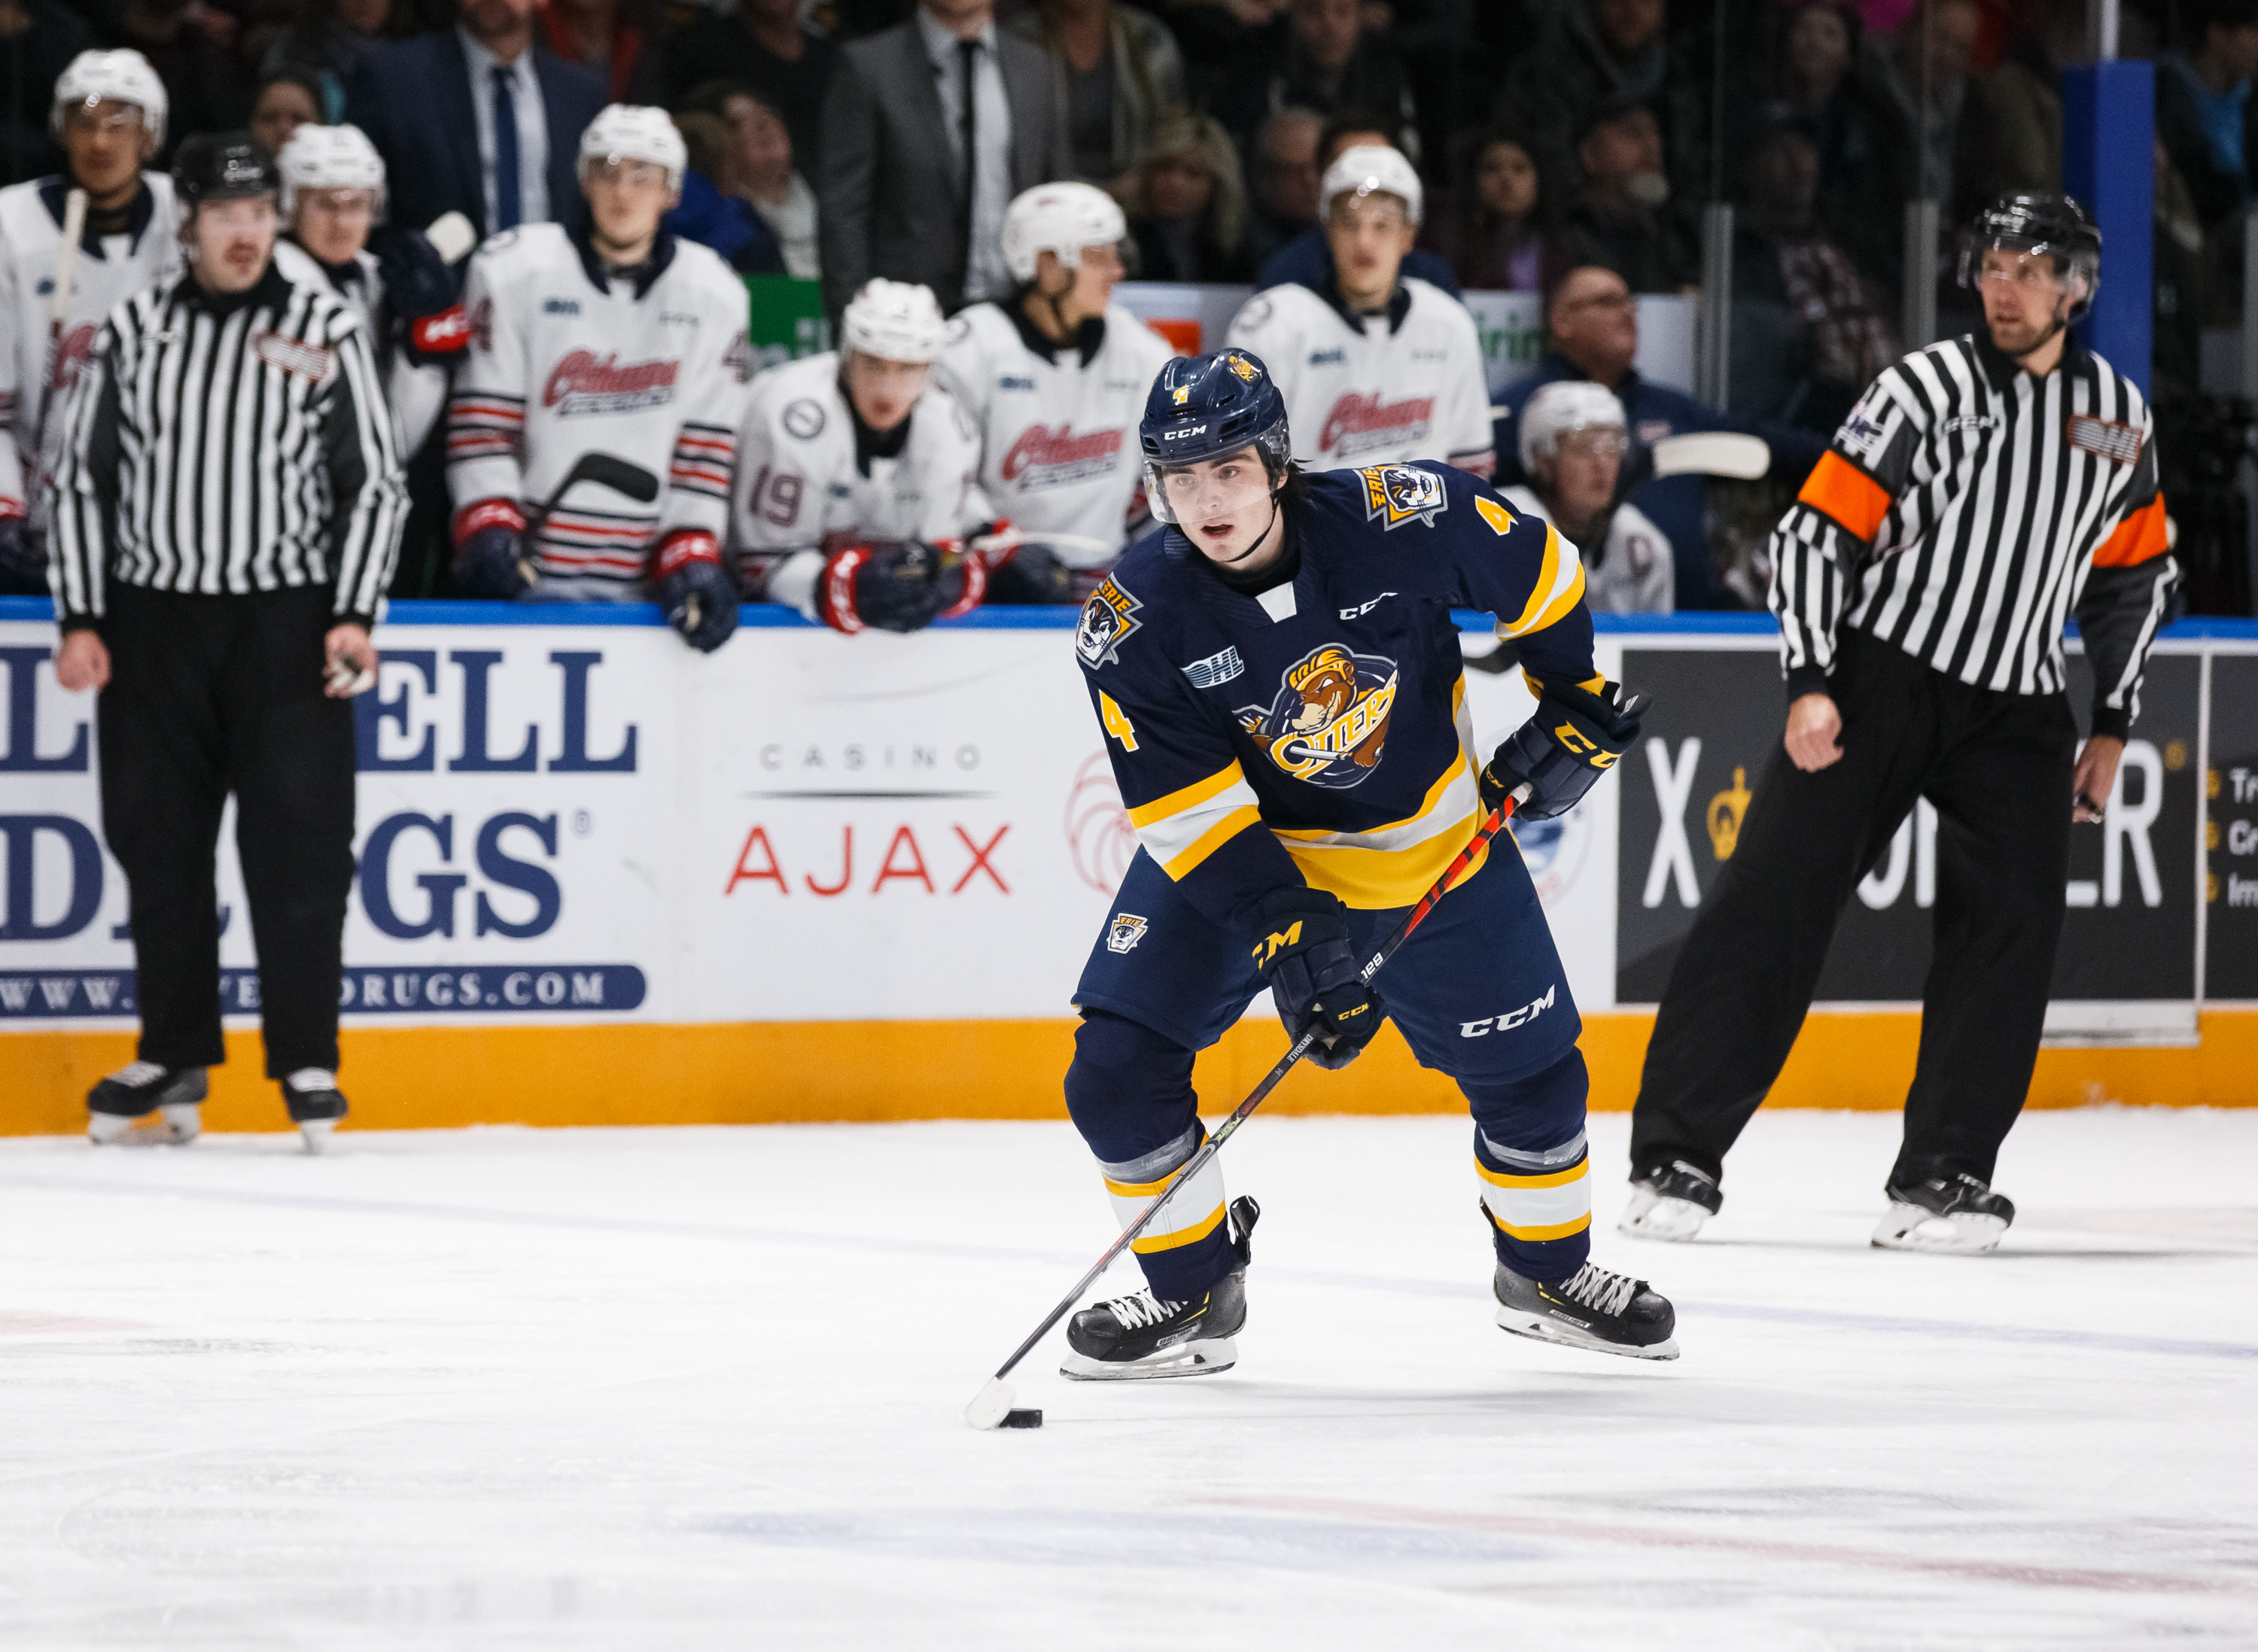 Jamie Drysdale #4 of the Erie Otters skates with the puck during an OHL game against the Oshawa Generals at the Tribute Communities Centre on November 22, 2019 in Oshawa, Ontario, Canada.